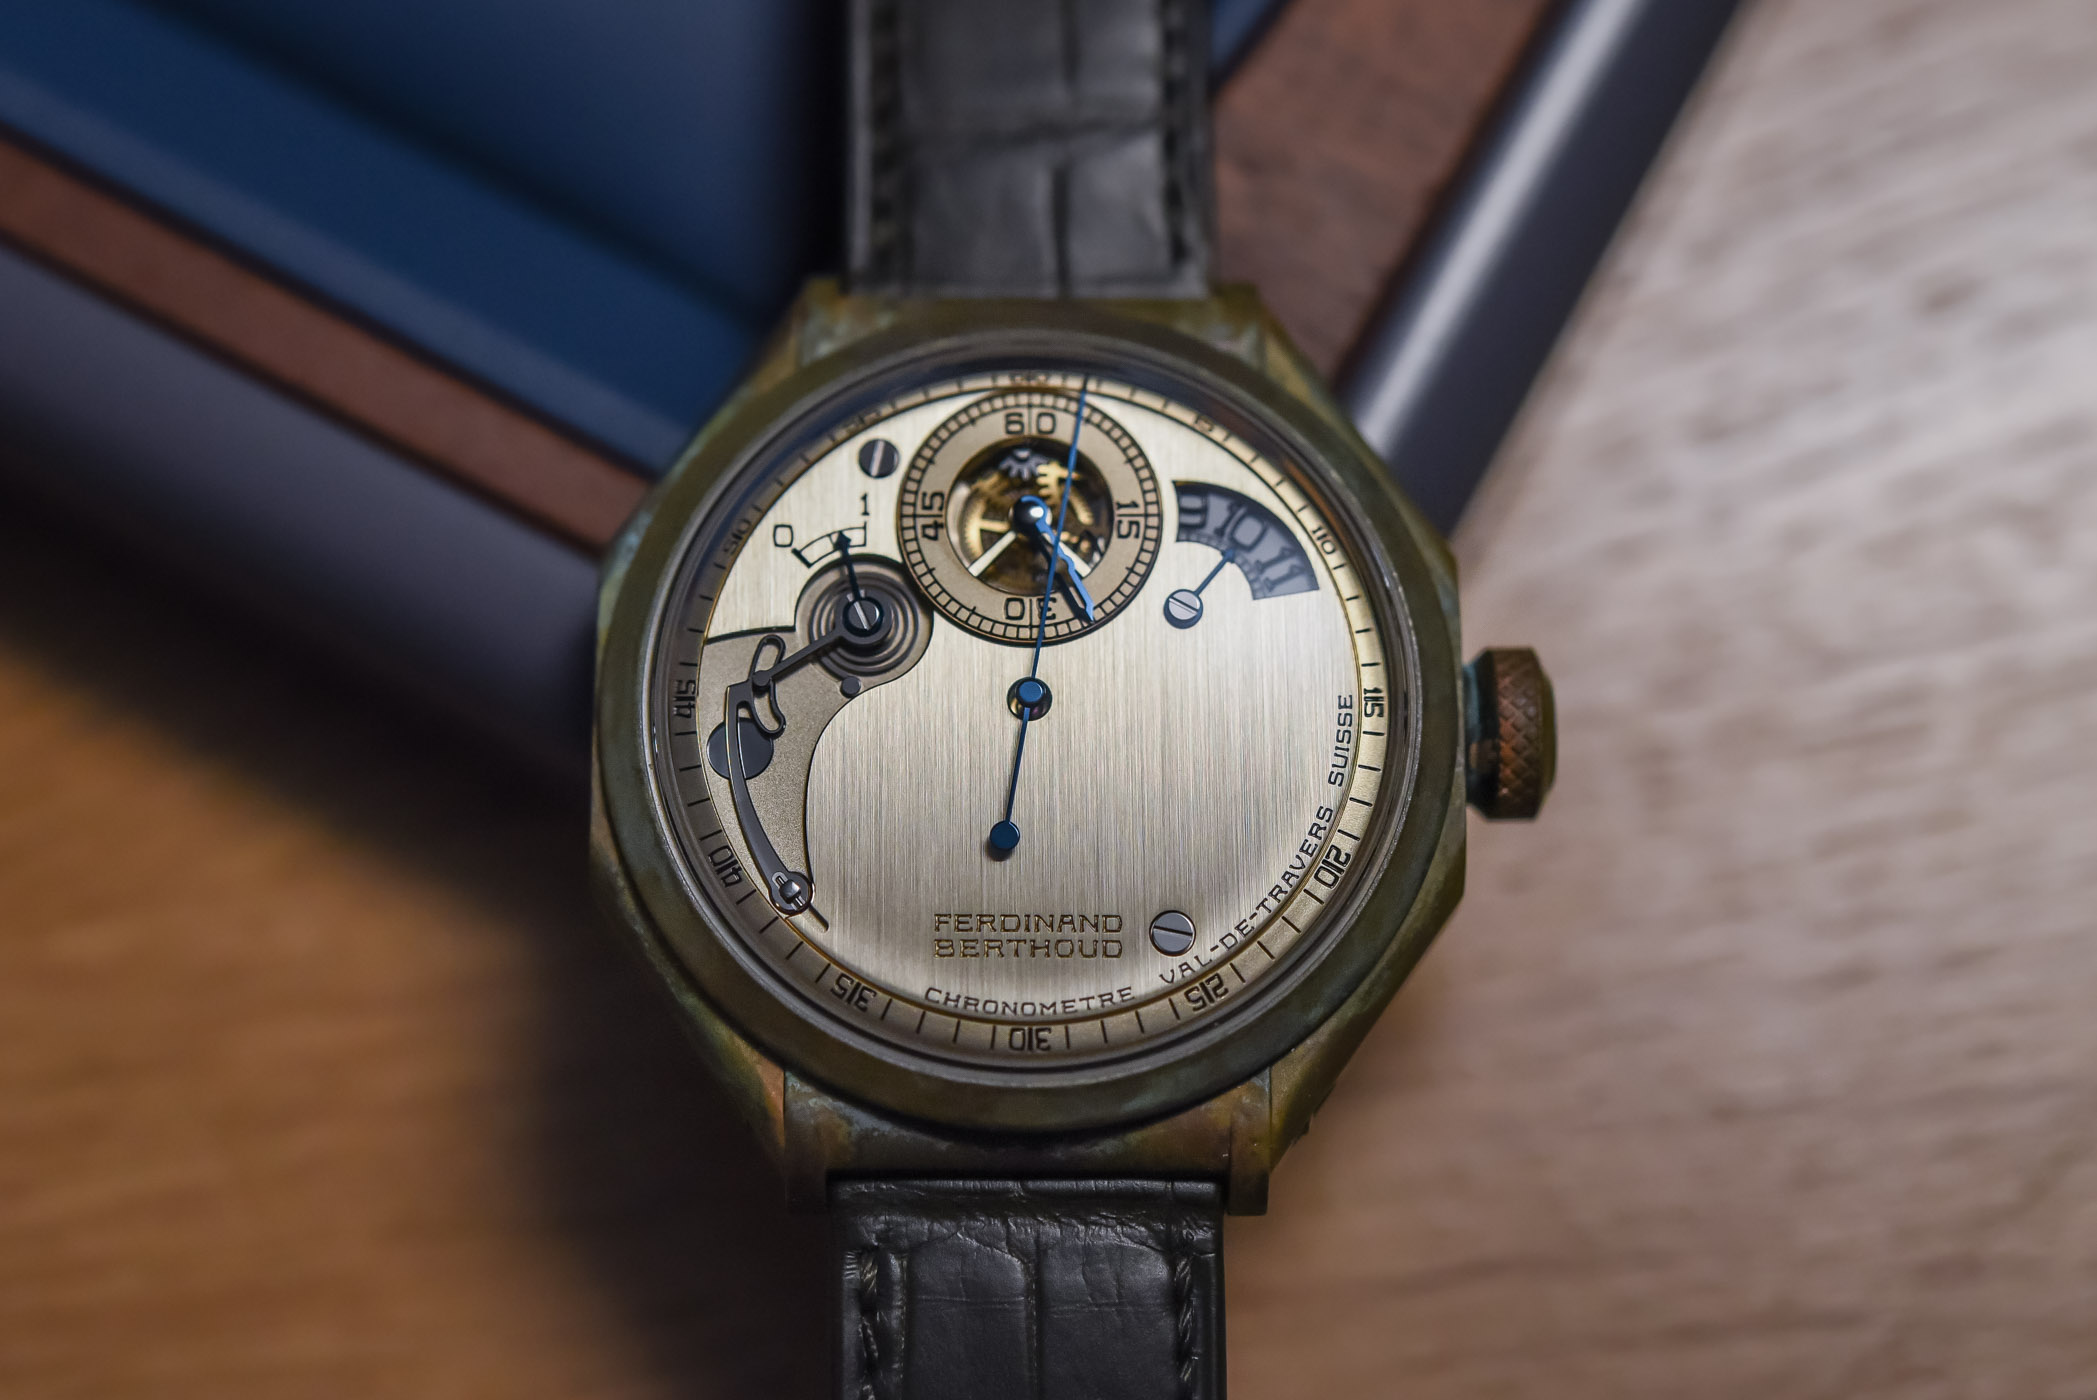 Ferdinand Berthoud chronometre fb 1r5 edition 1785 patinated bronze